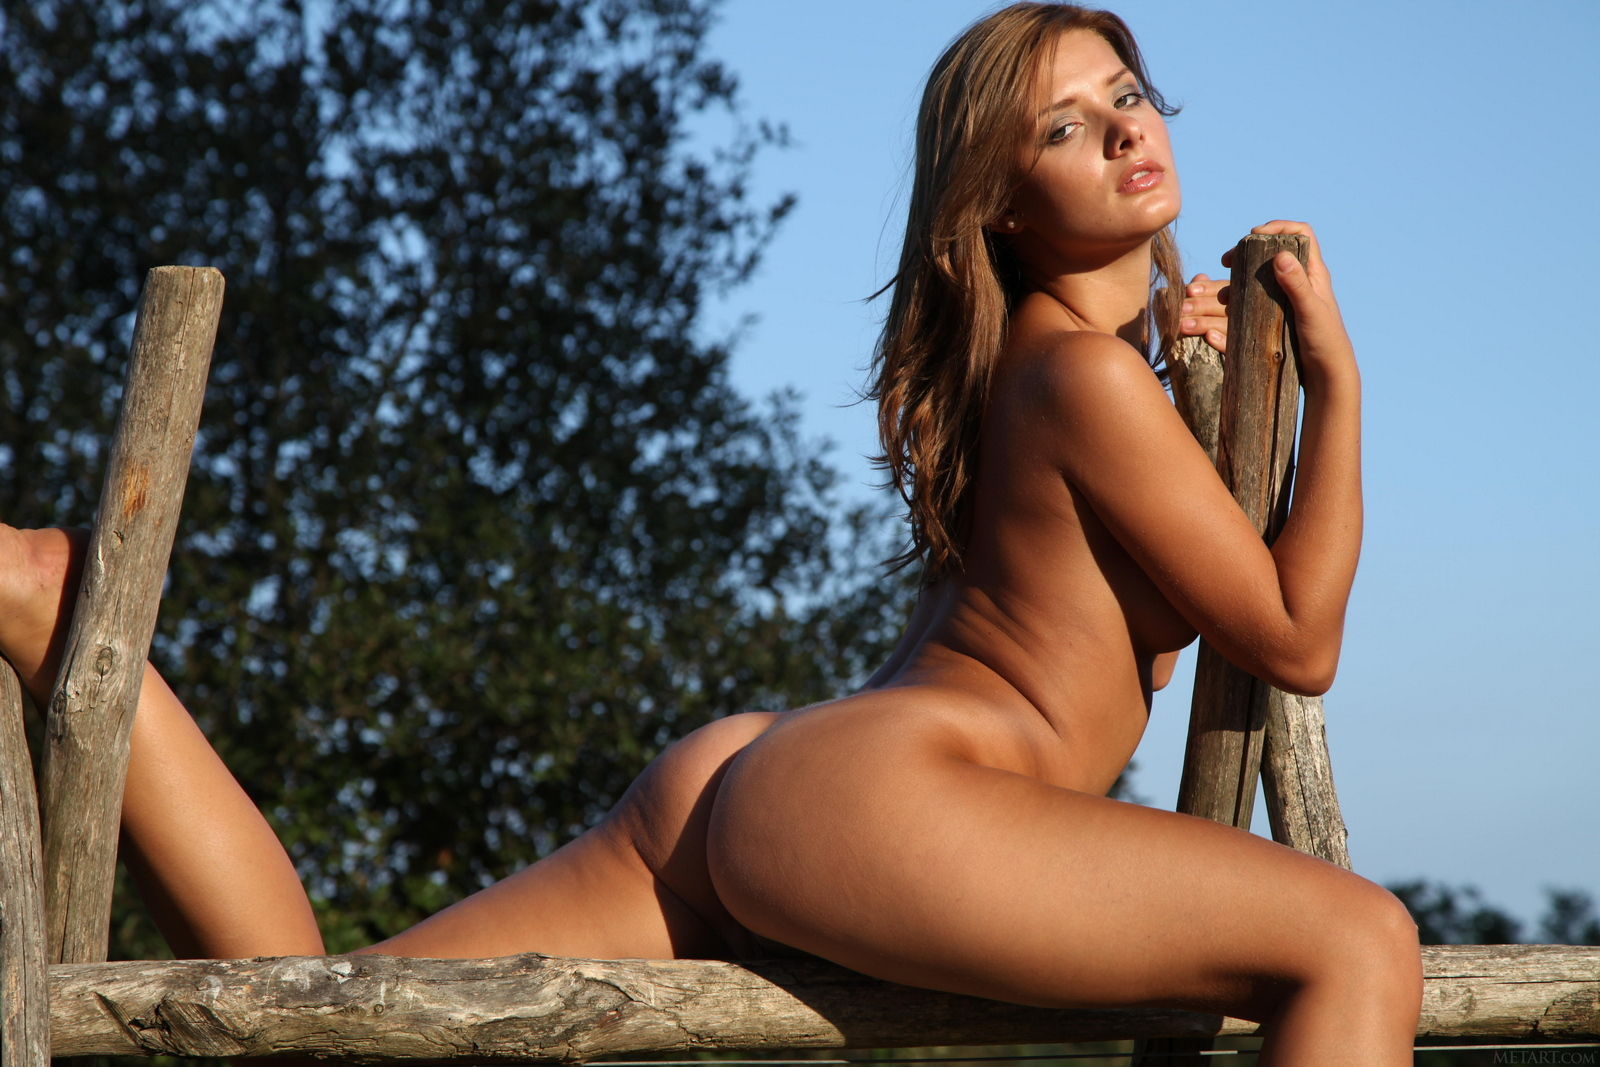 edwige-a-boobs-naked-outdoor-woods-metart-41